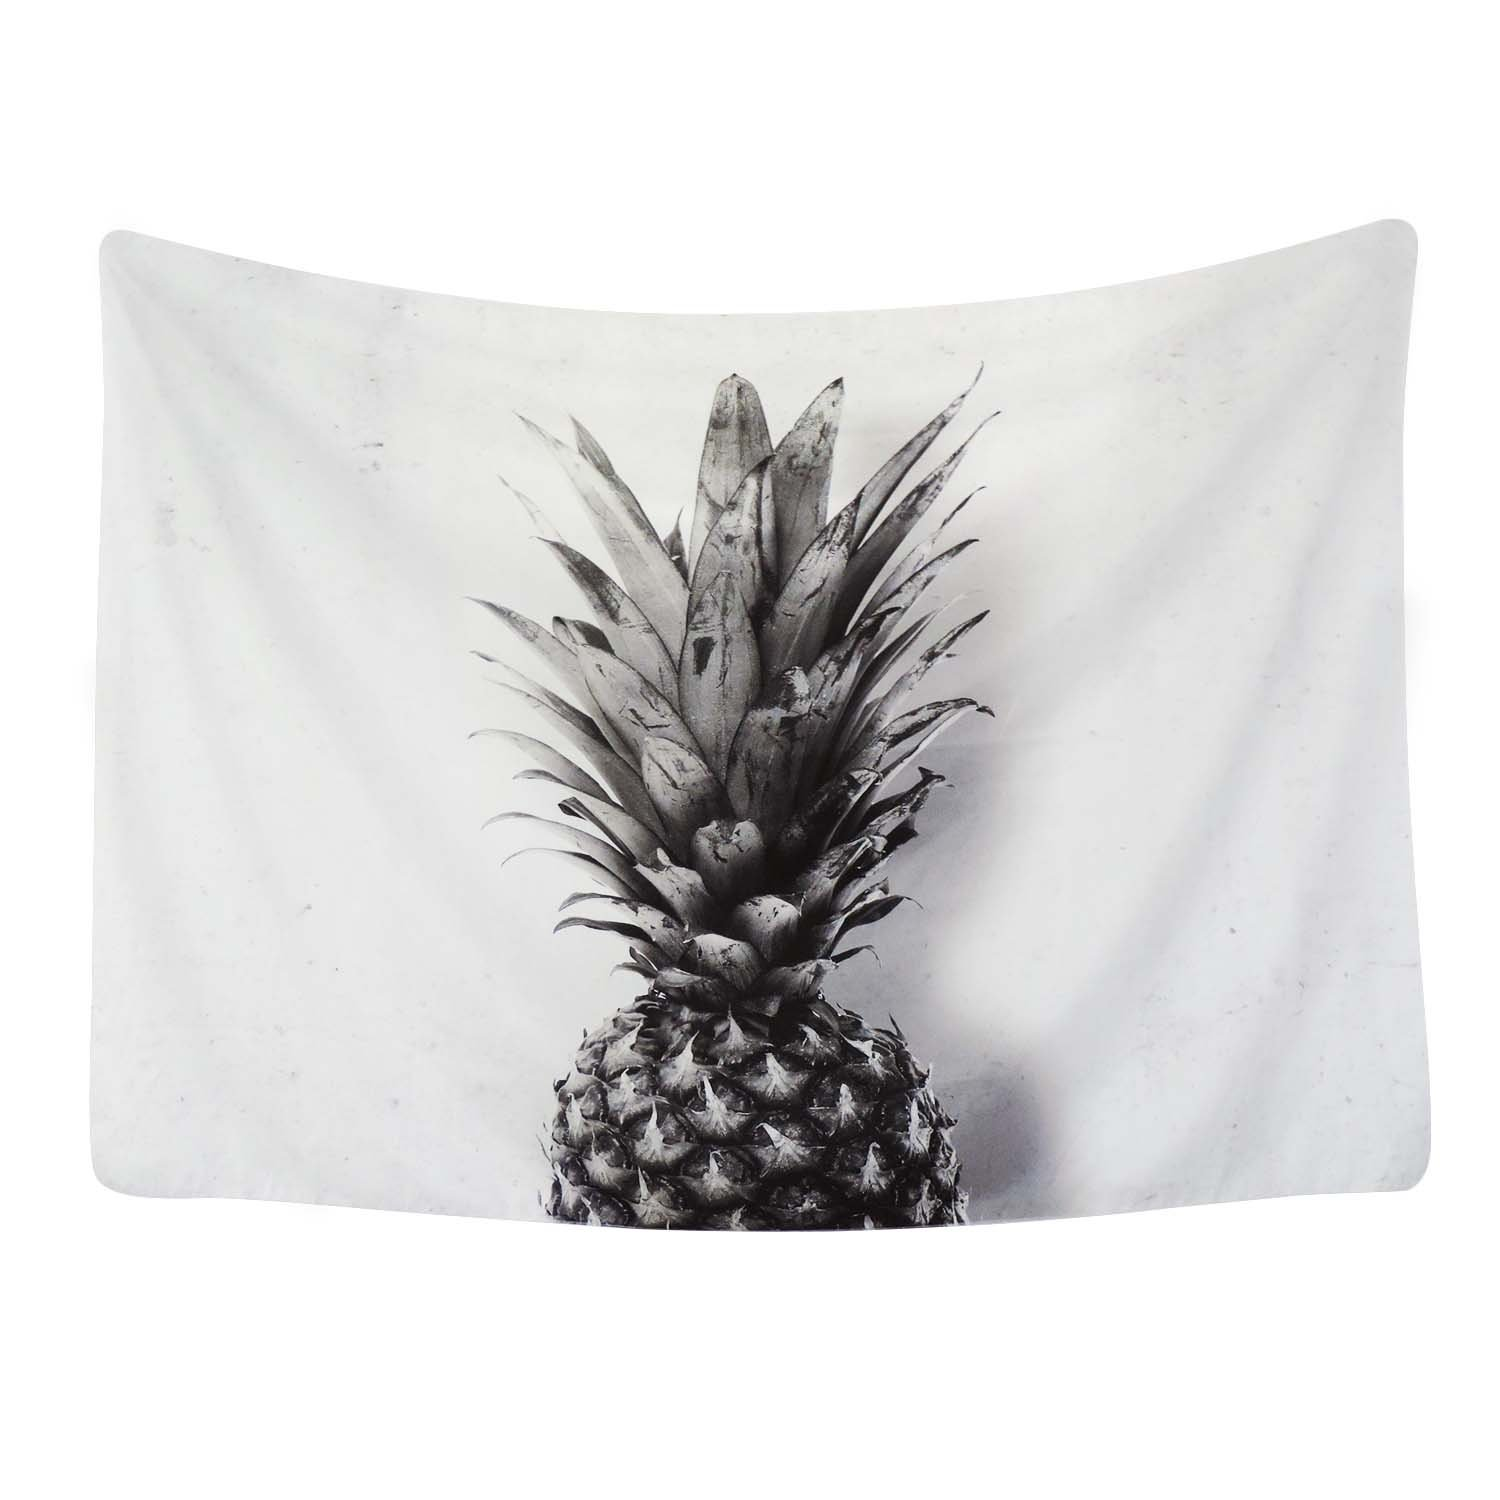 Sunm boutique Pineapple Tapestry Wall Art Hanging Tapestry for Living Room Bedroom Dorm Home Decor (51''x59'', Pineapple-1) by Sunm boutique